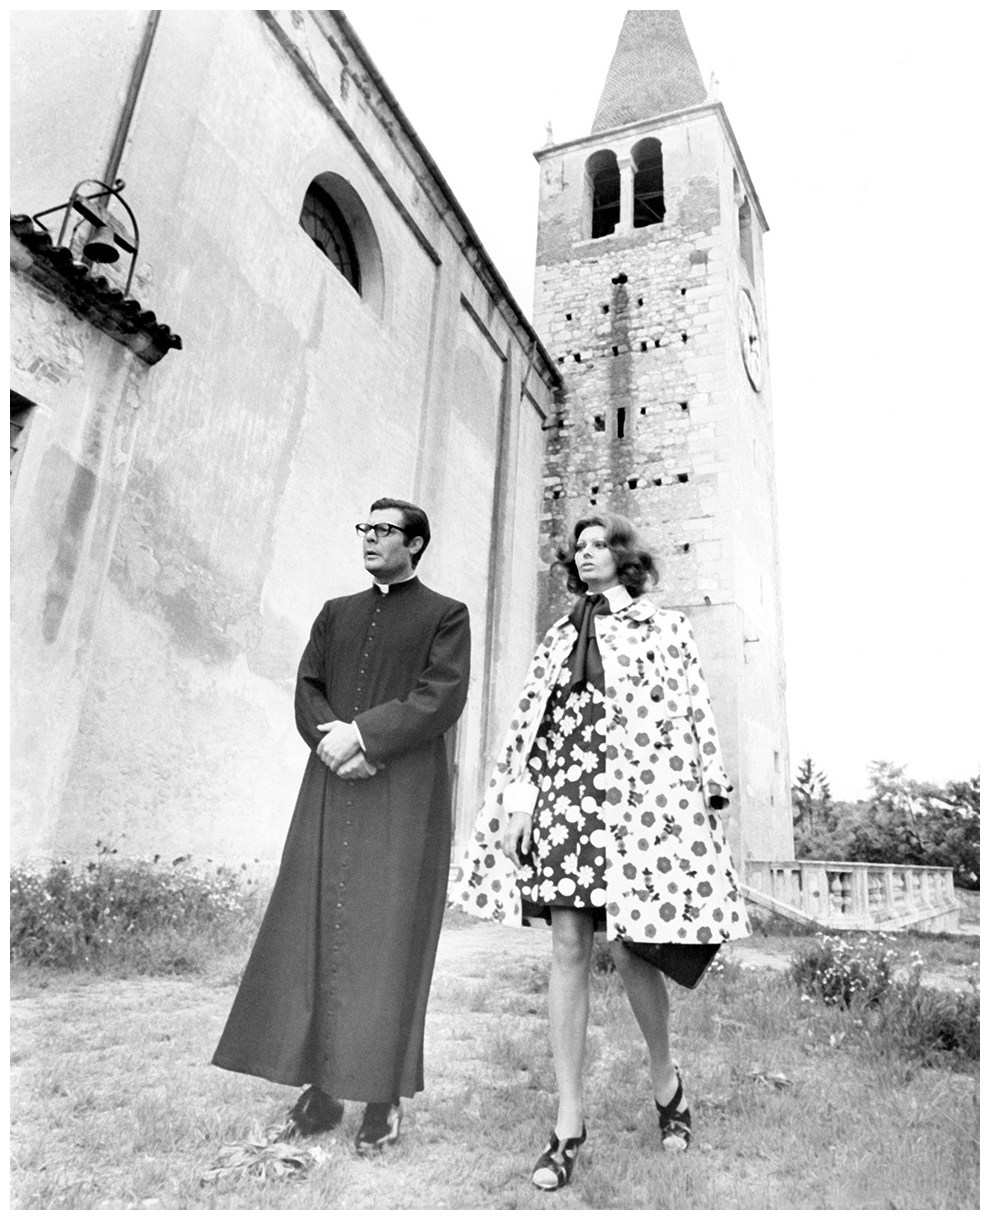 Marcello-Mastroianni-and-Sophia-Loren-The-Priest's-Wife-1971-directed-by-Dino-Risi-Costume-designer-Gianni-Polidori.jpg